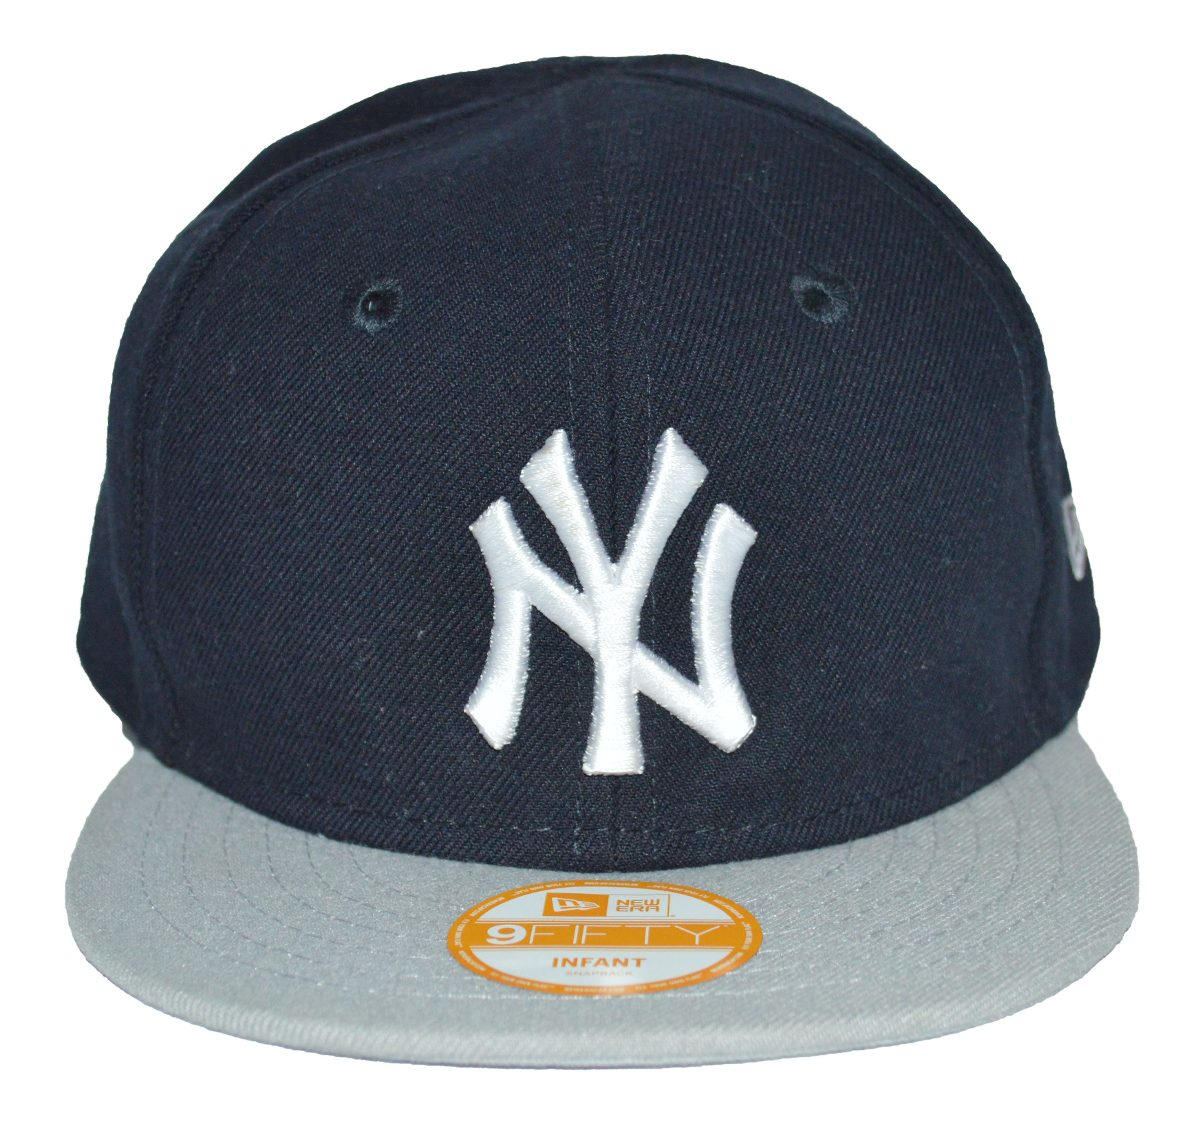 boné new era aba reta aberto mlb new york yankees infantil. Carregando zoom. 0adbe3ad257